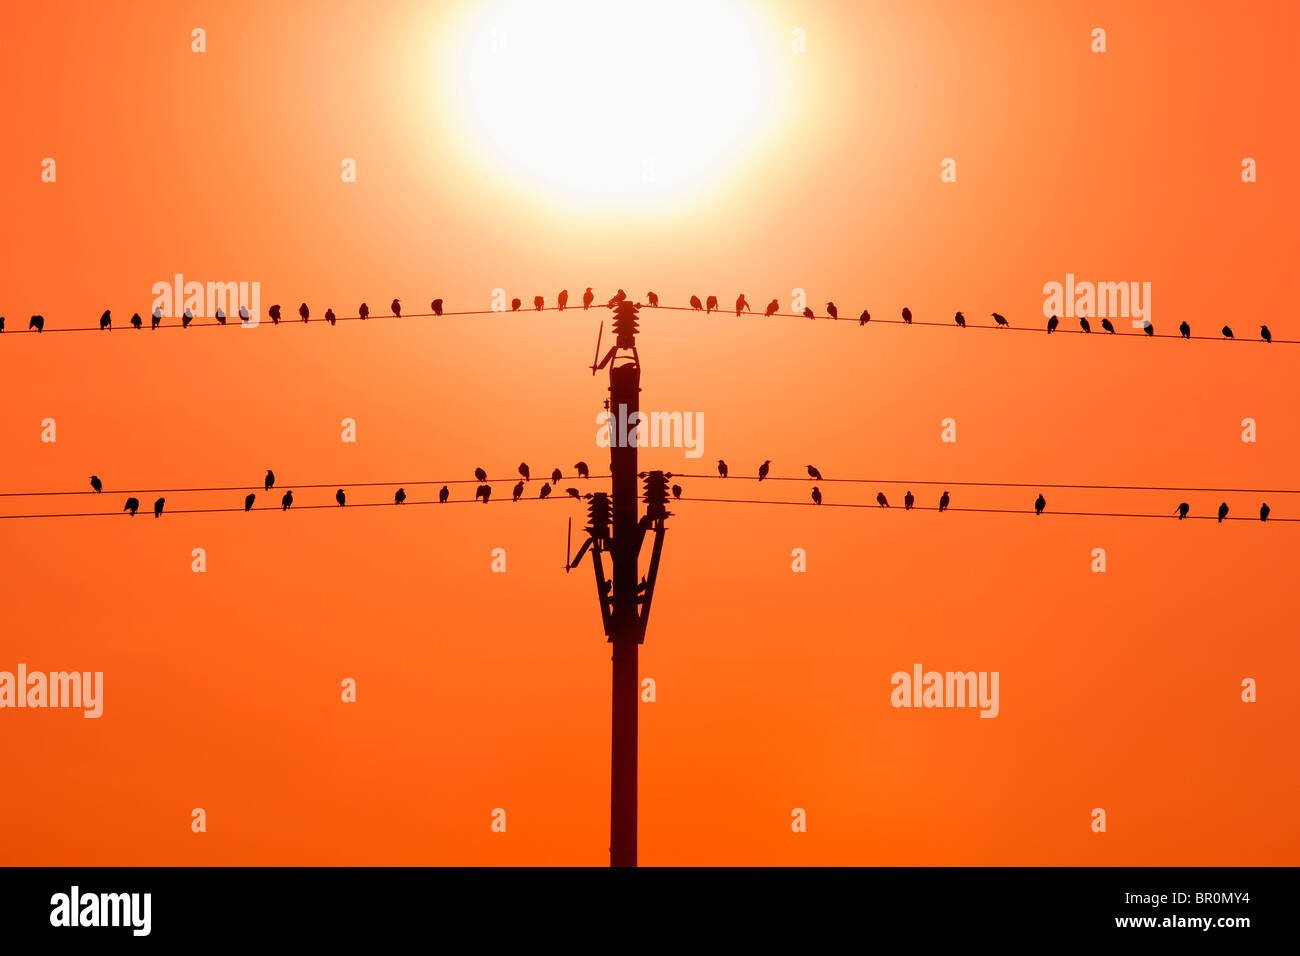 birds sitting on wires in sunset - Stock Image